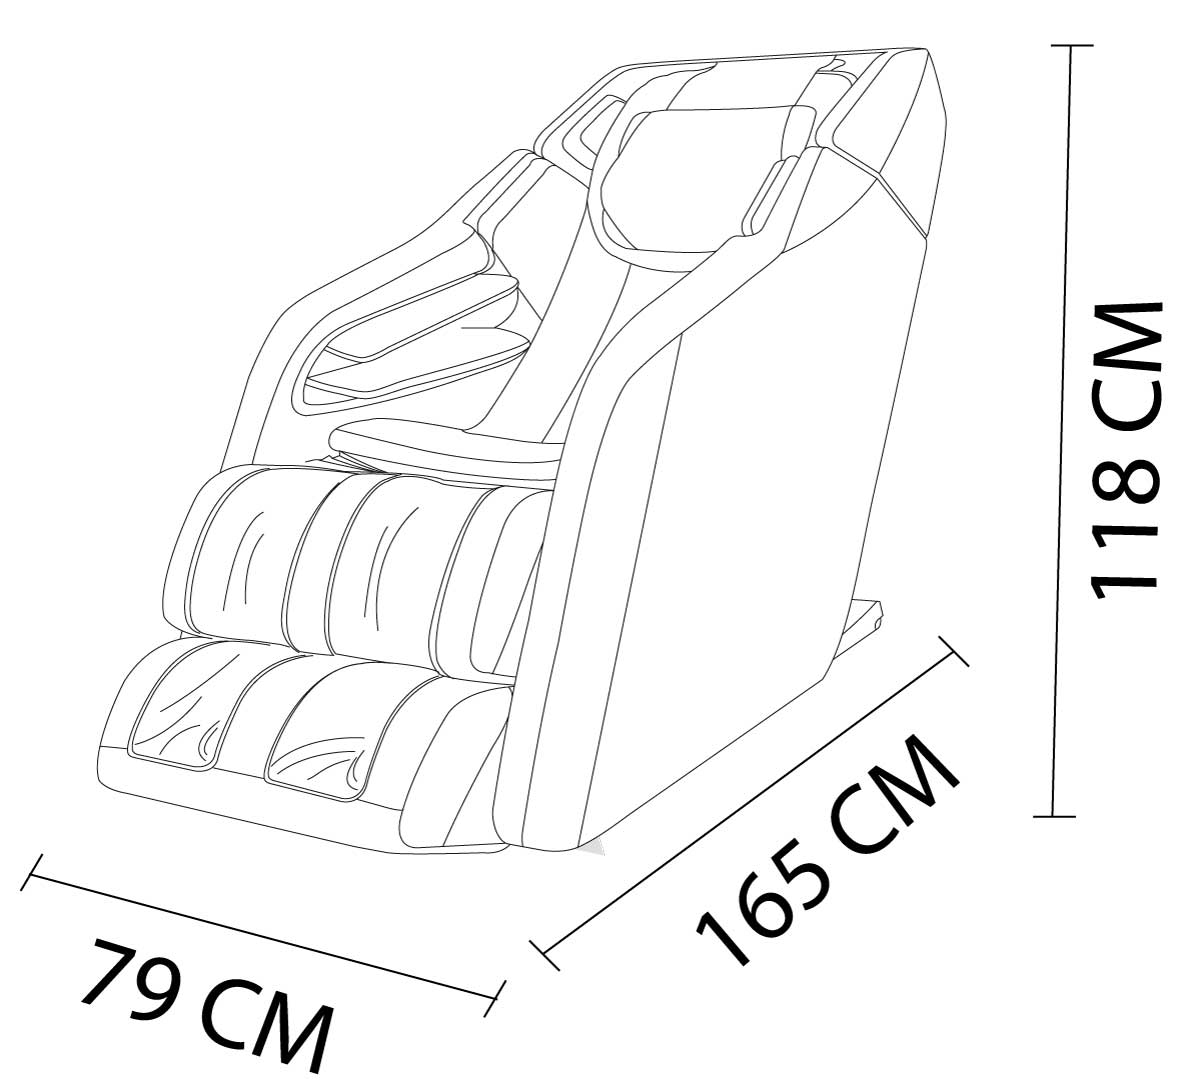 Dimensions of the Formatica iQ 4D Massage Chair